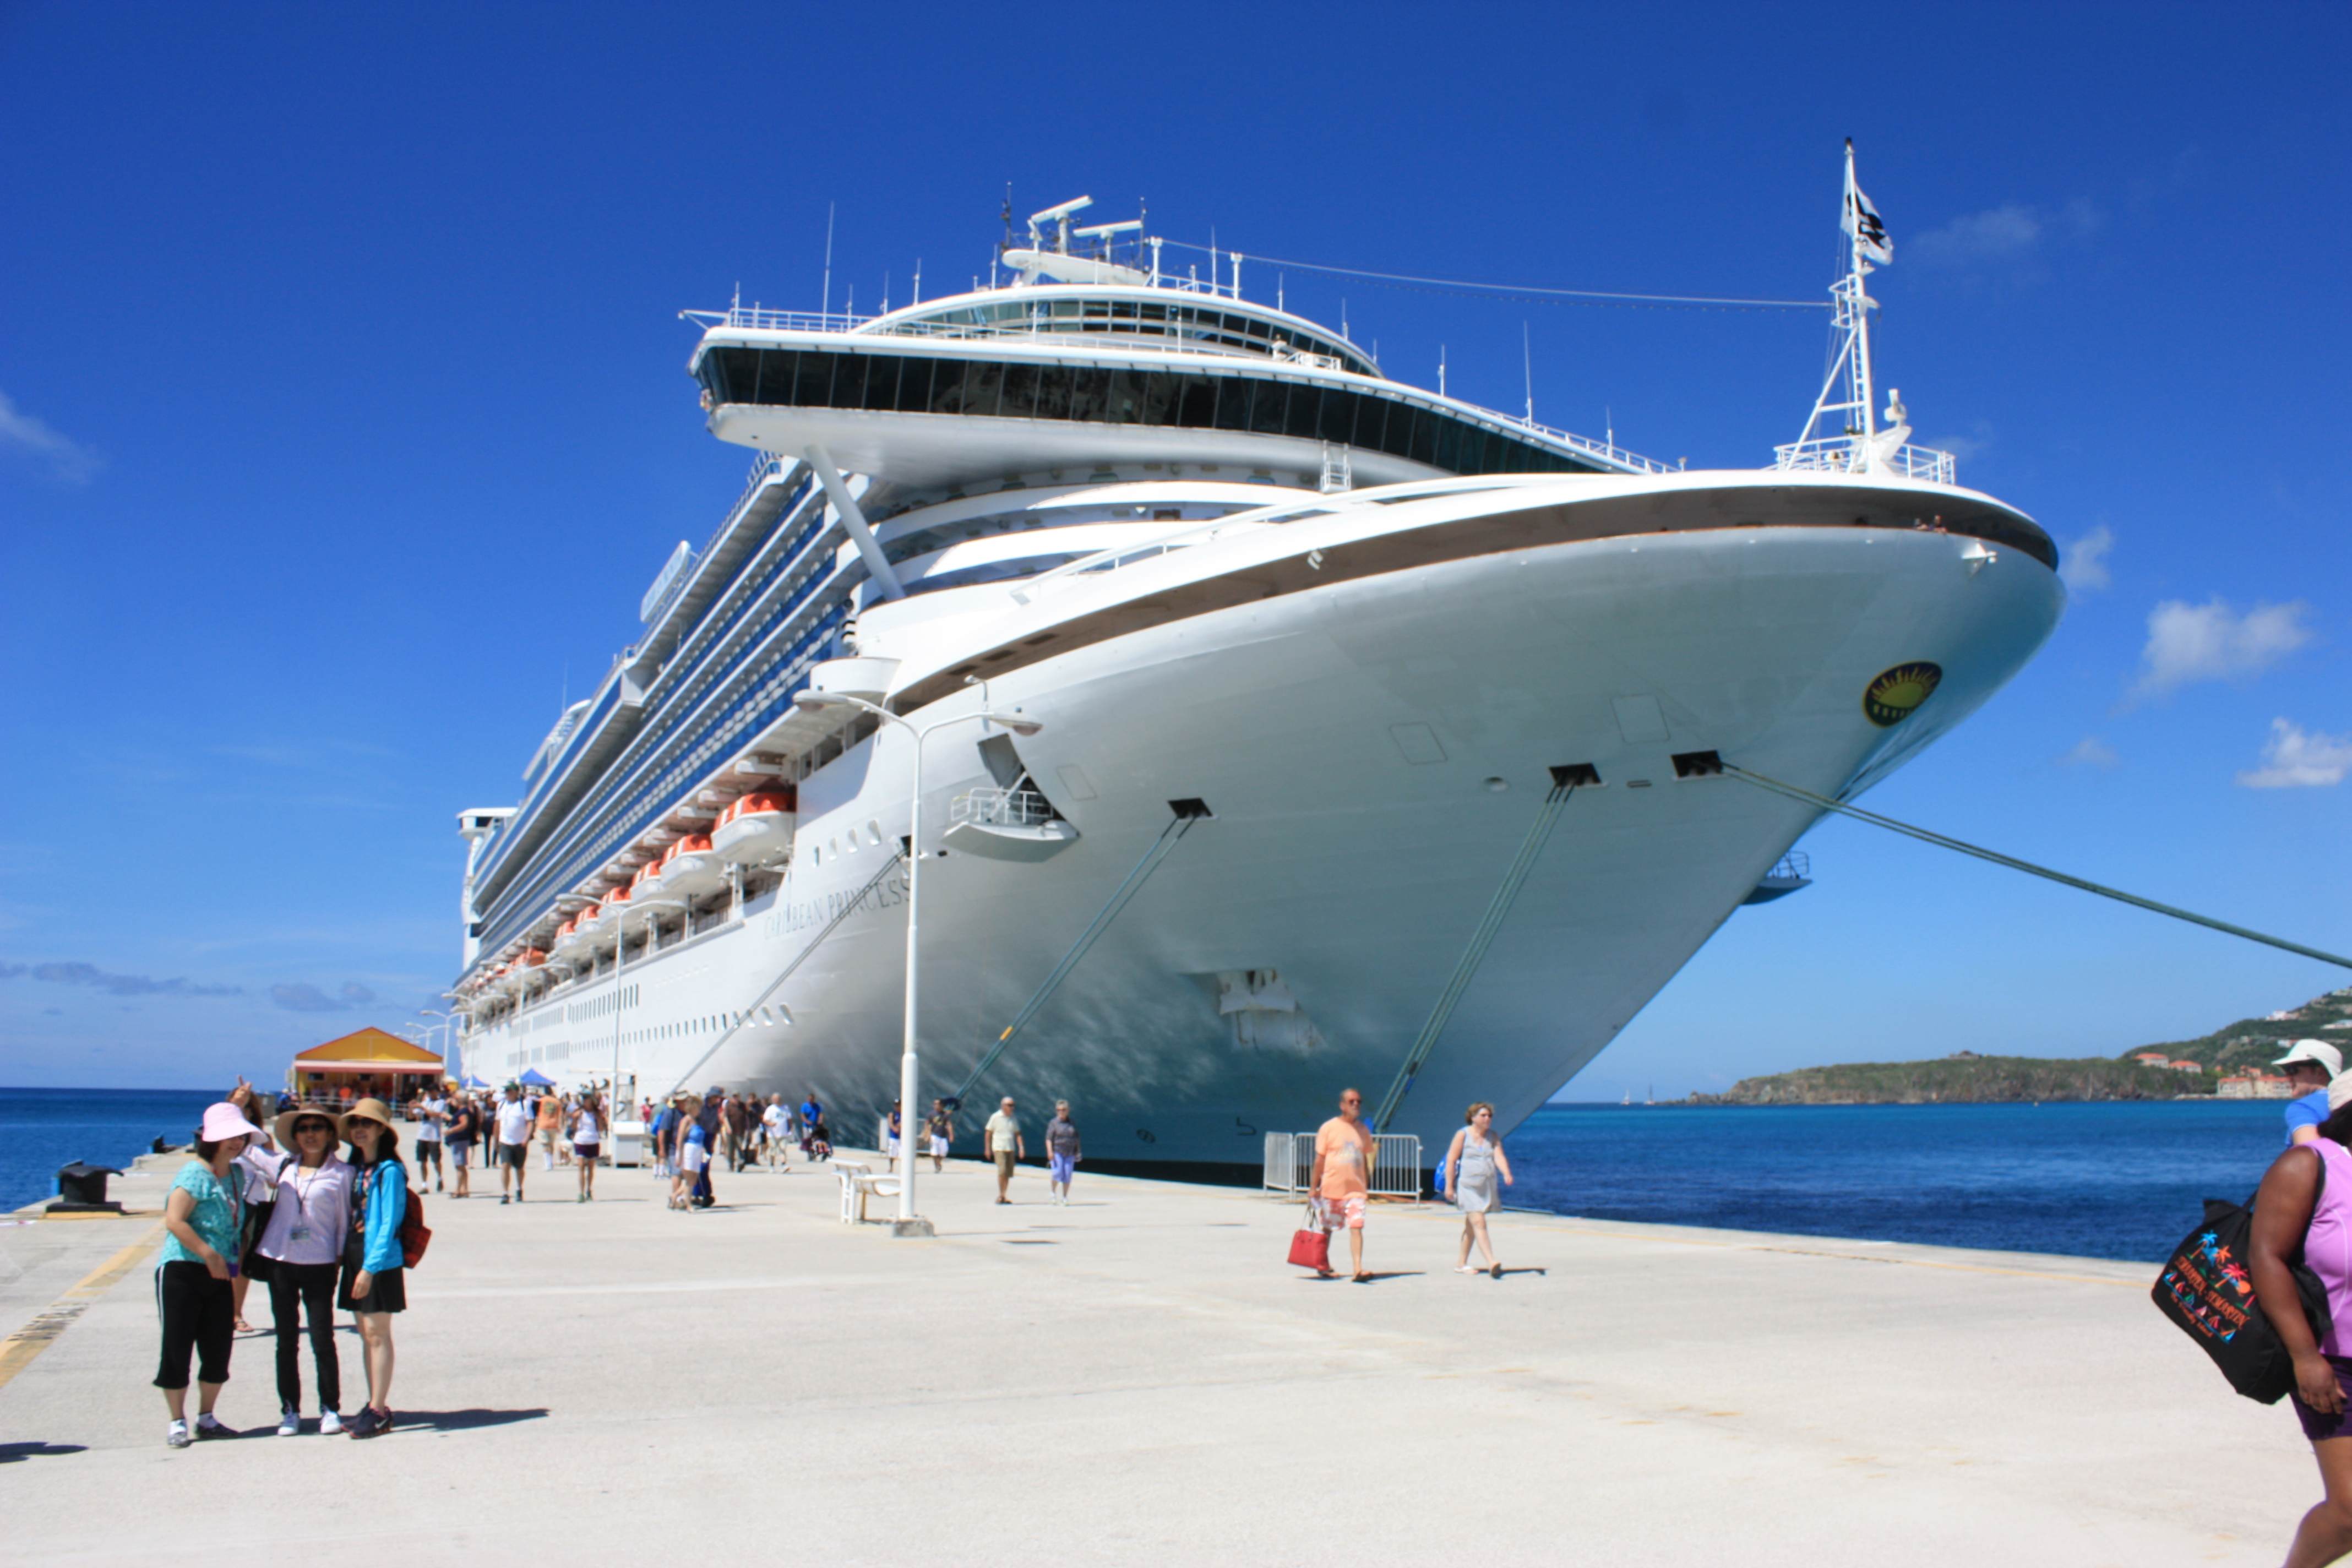 Caribbean Princess - Wikipedia